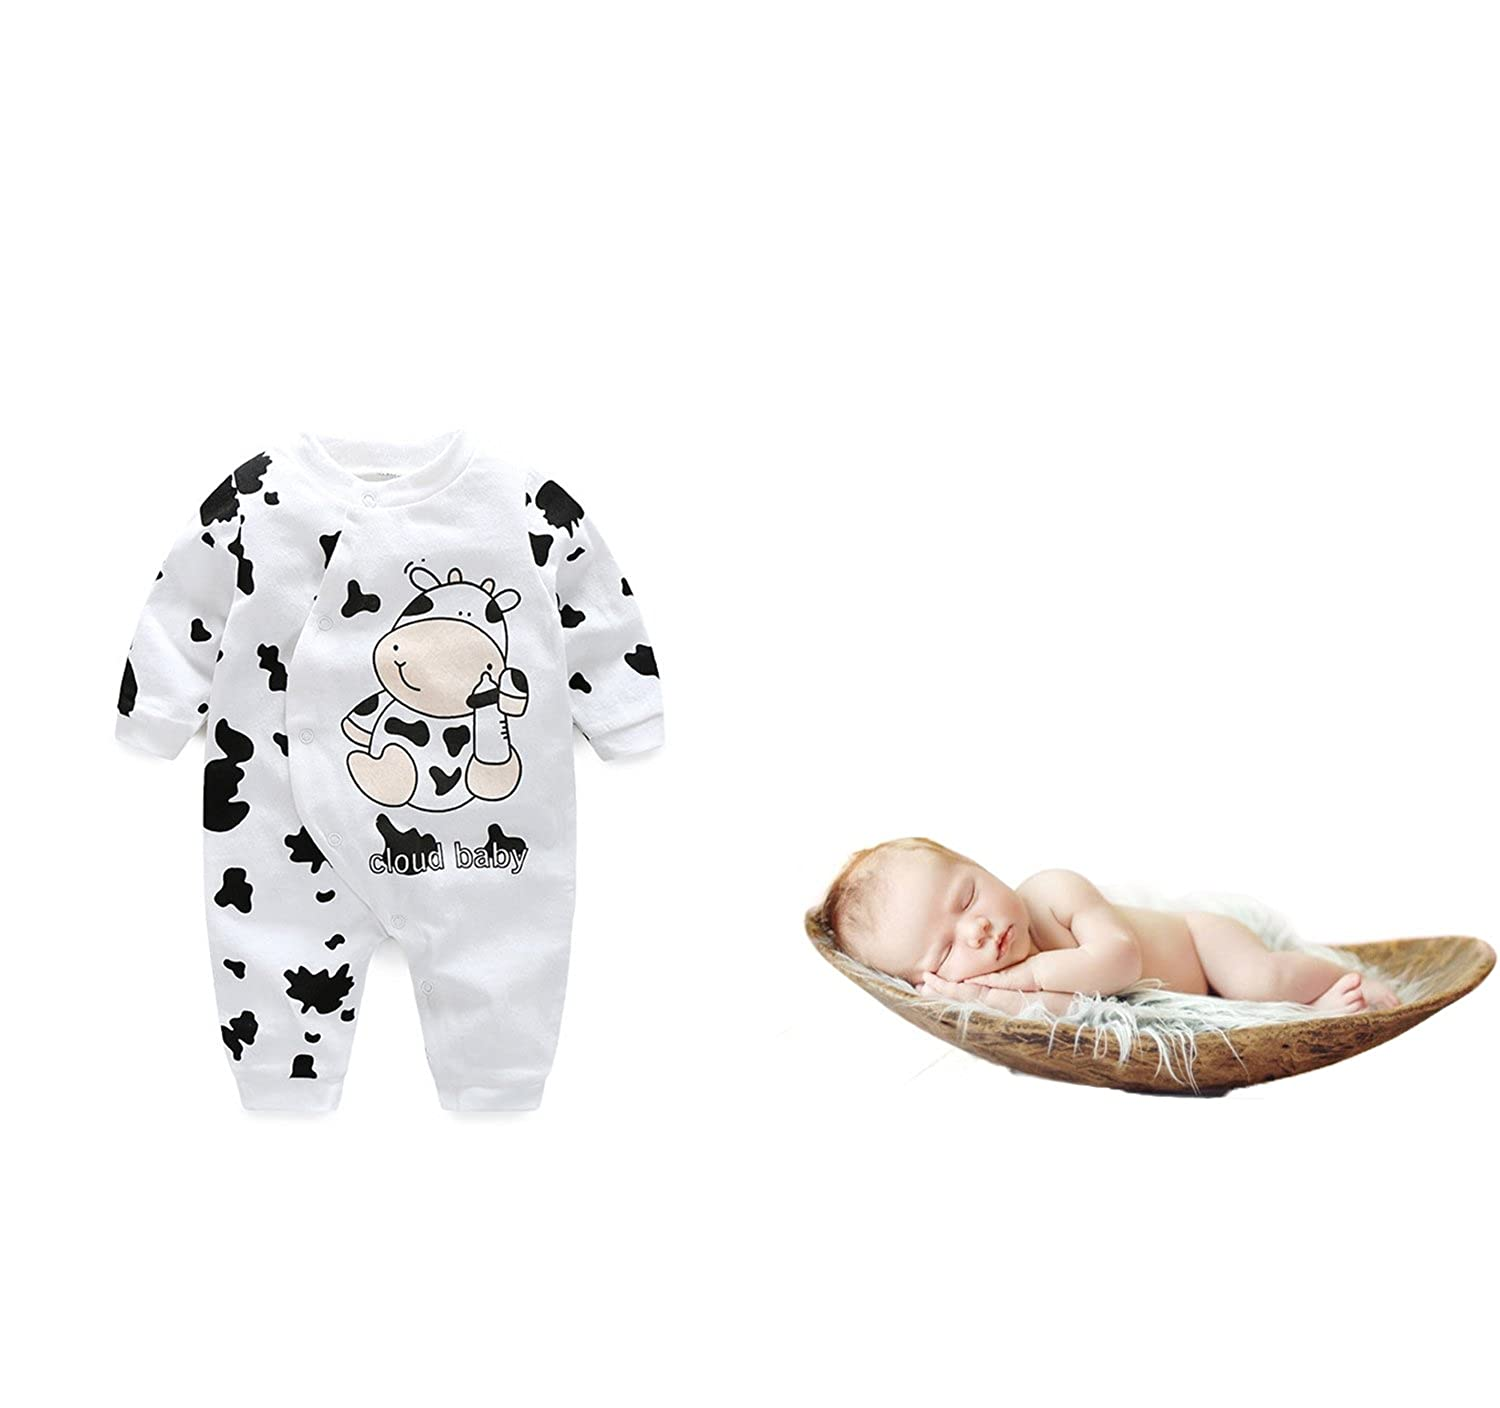 Lemonkids® Baby Onesies Unisex Clothes Cow Print Long Sleeve Faddist Spark Malls-CA